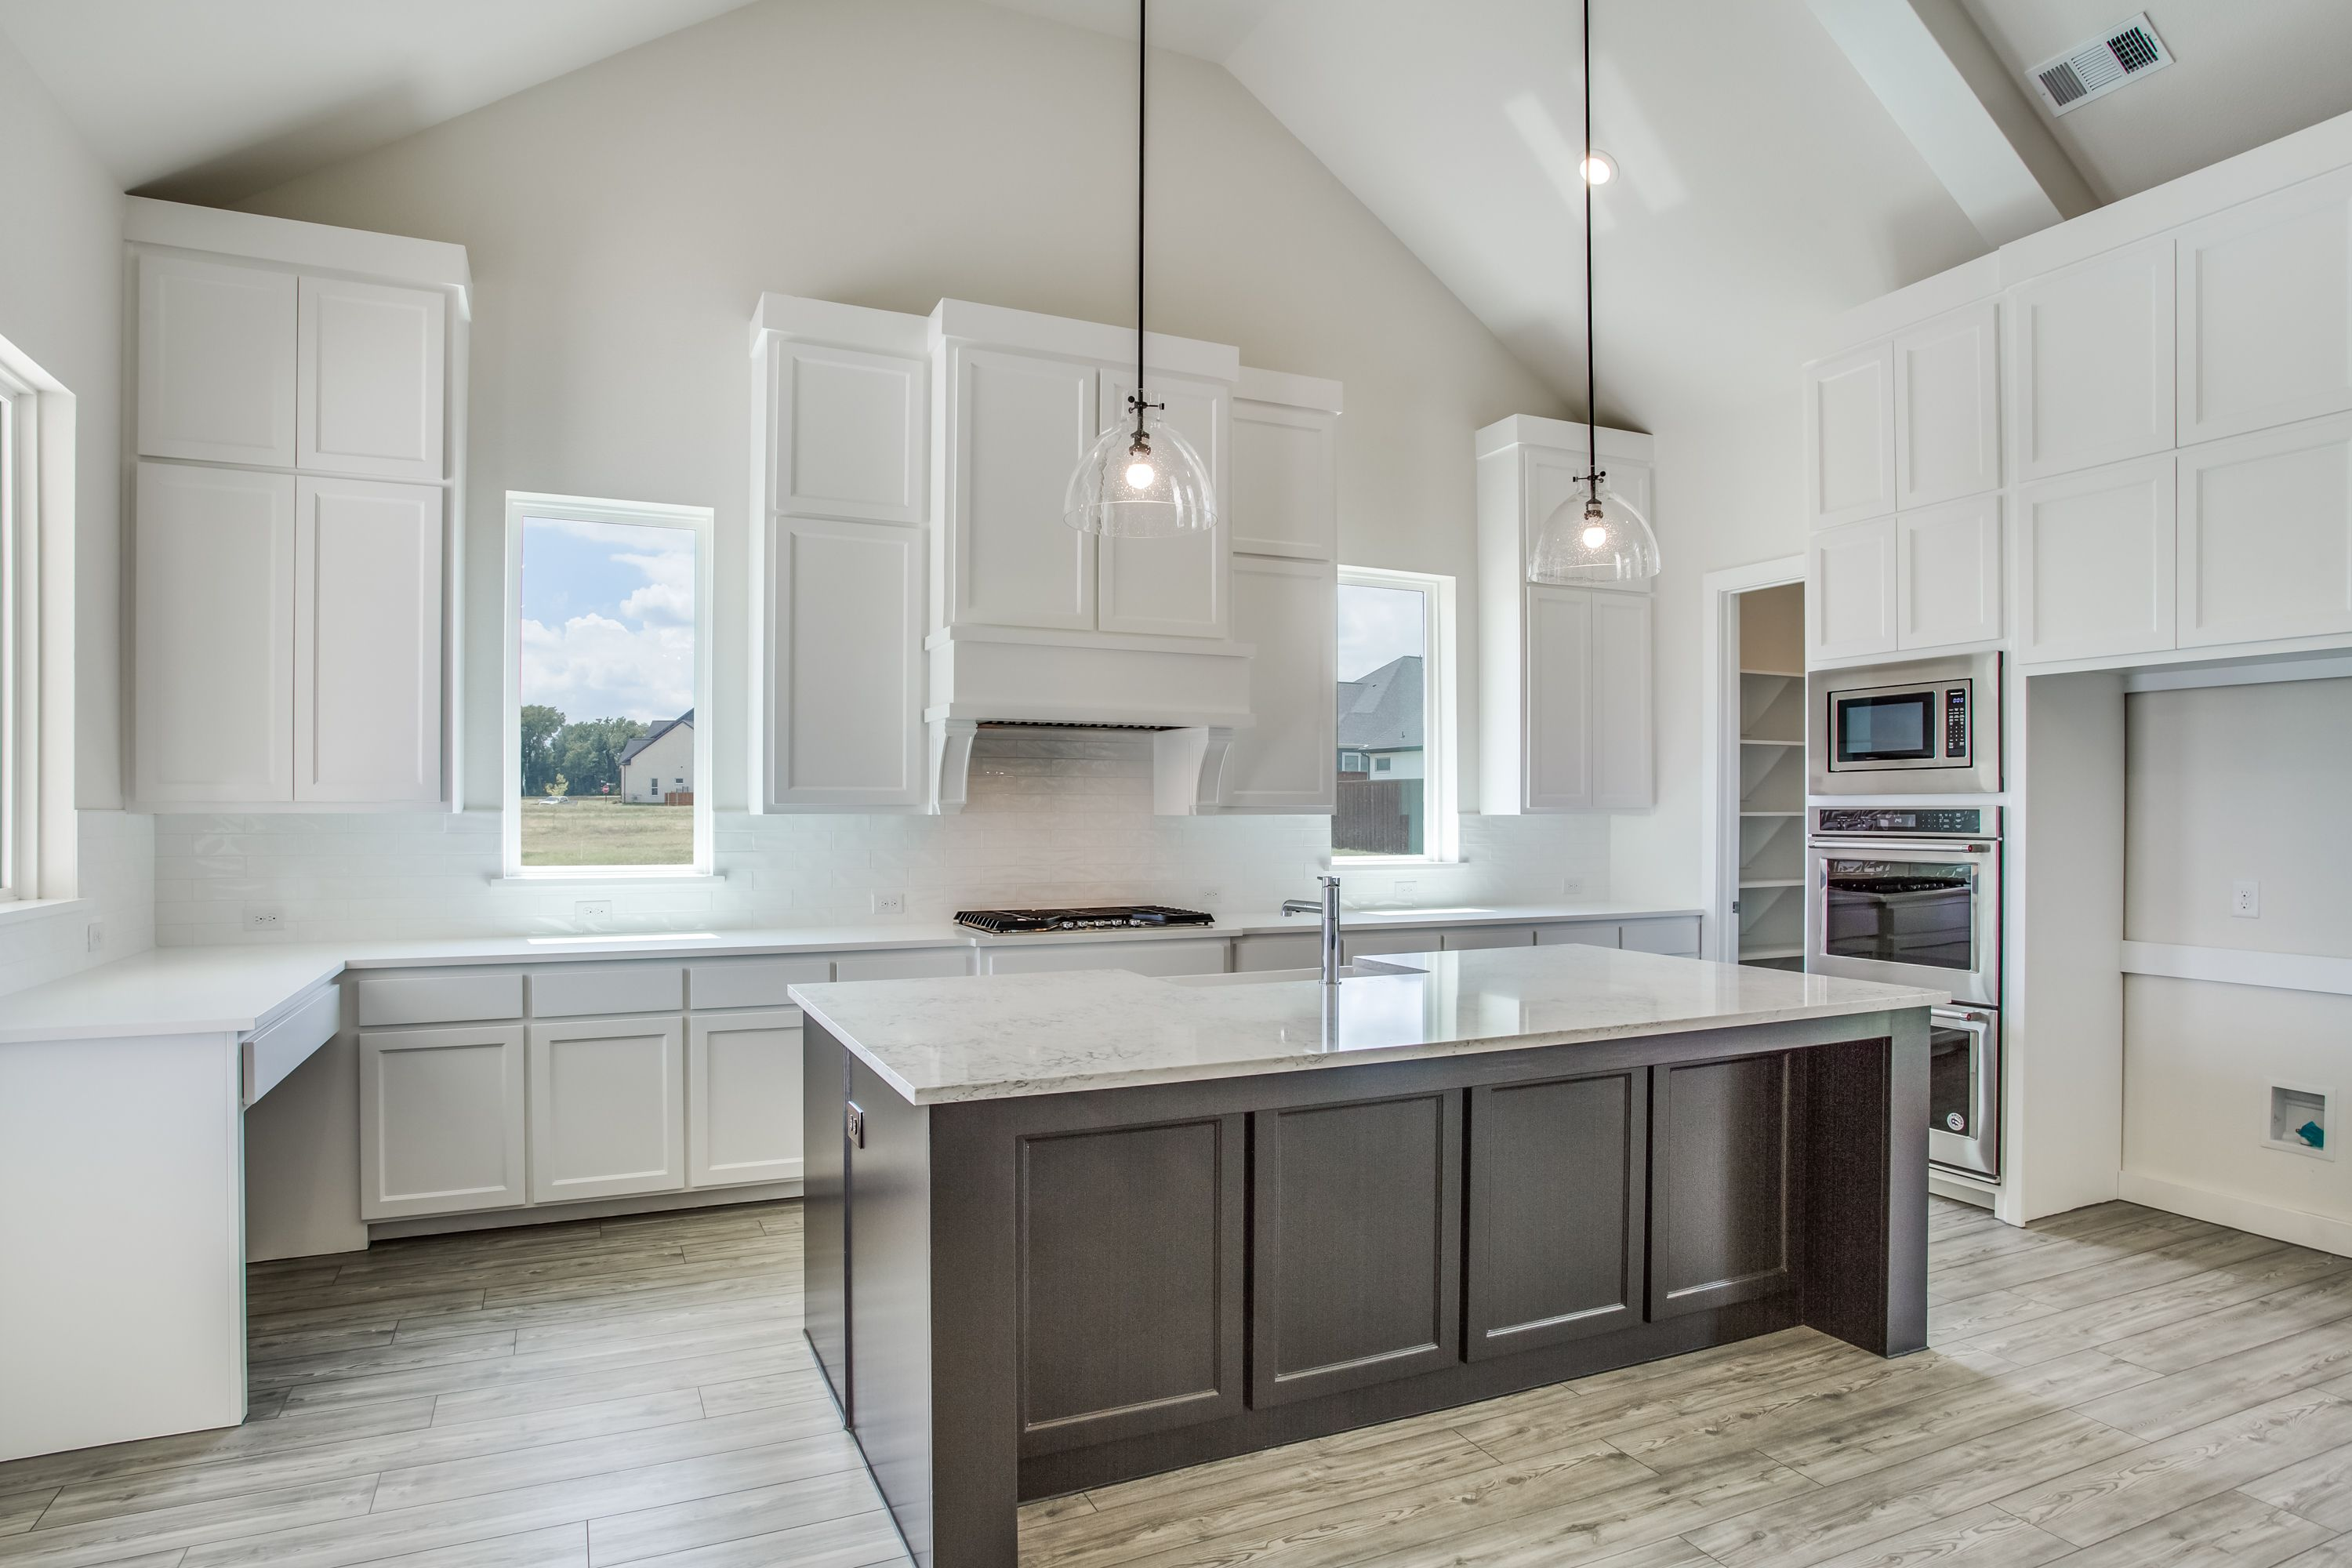 Kitchen featured in The Avery   60105 By Southgate Homes in Dallas, TX